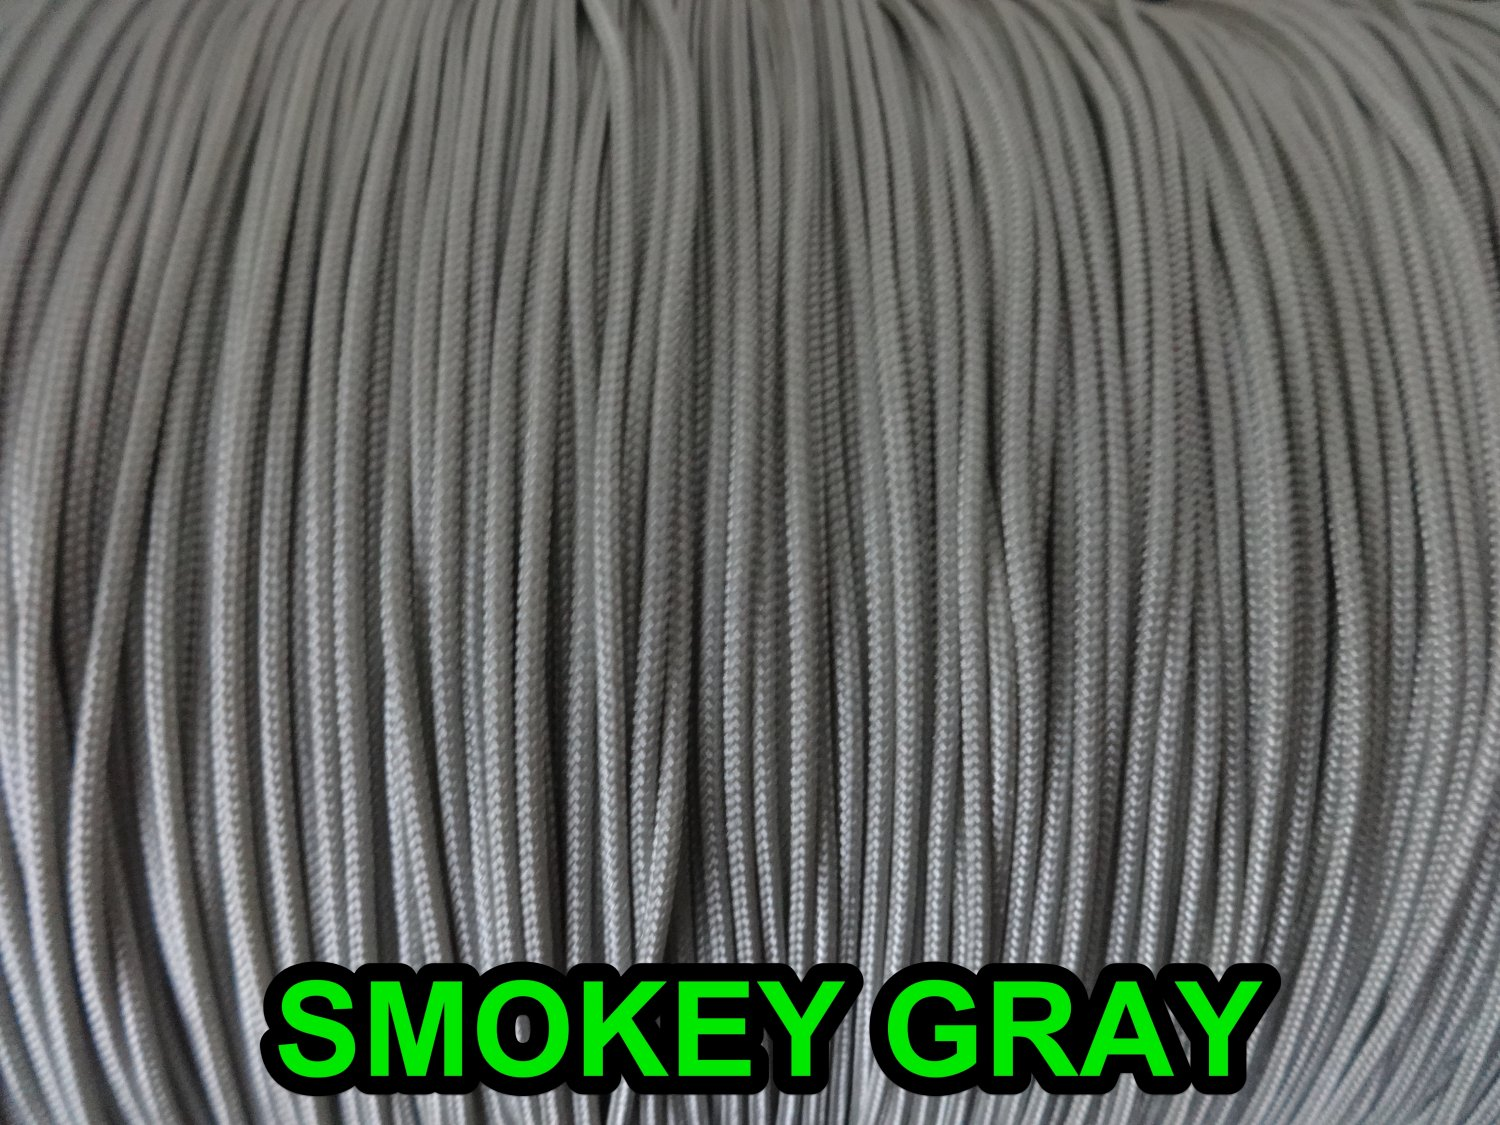 100 FEET 1.4 MM SMOKEY GRAY Professional Braided Lift Cord / Blinds & Shades